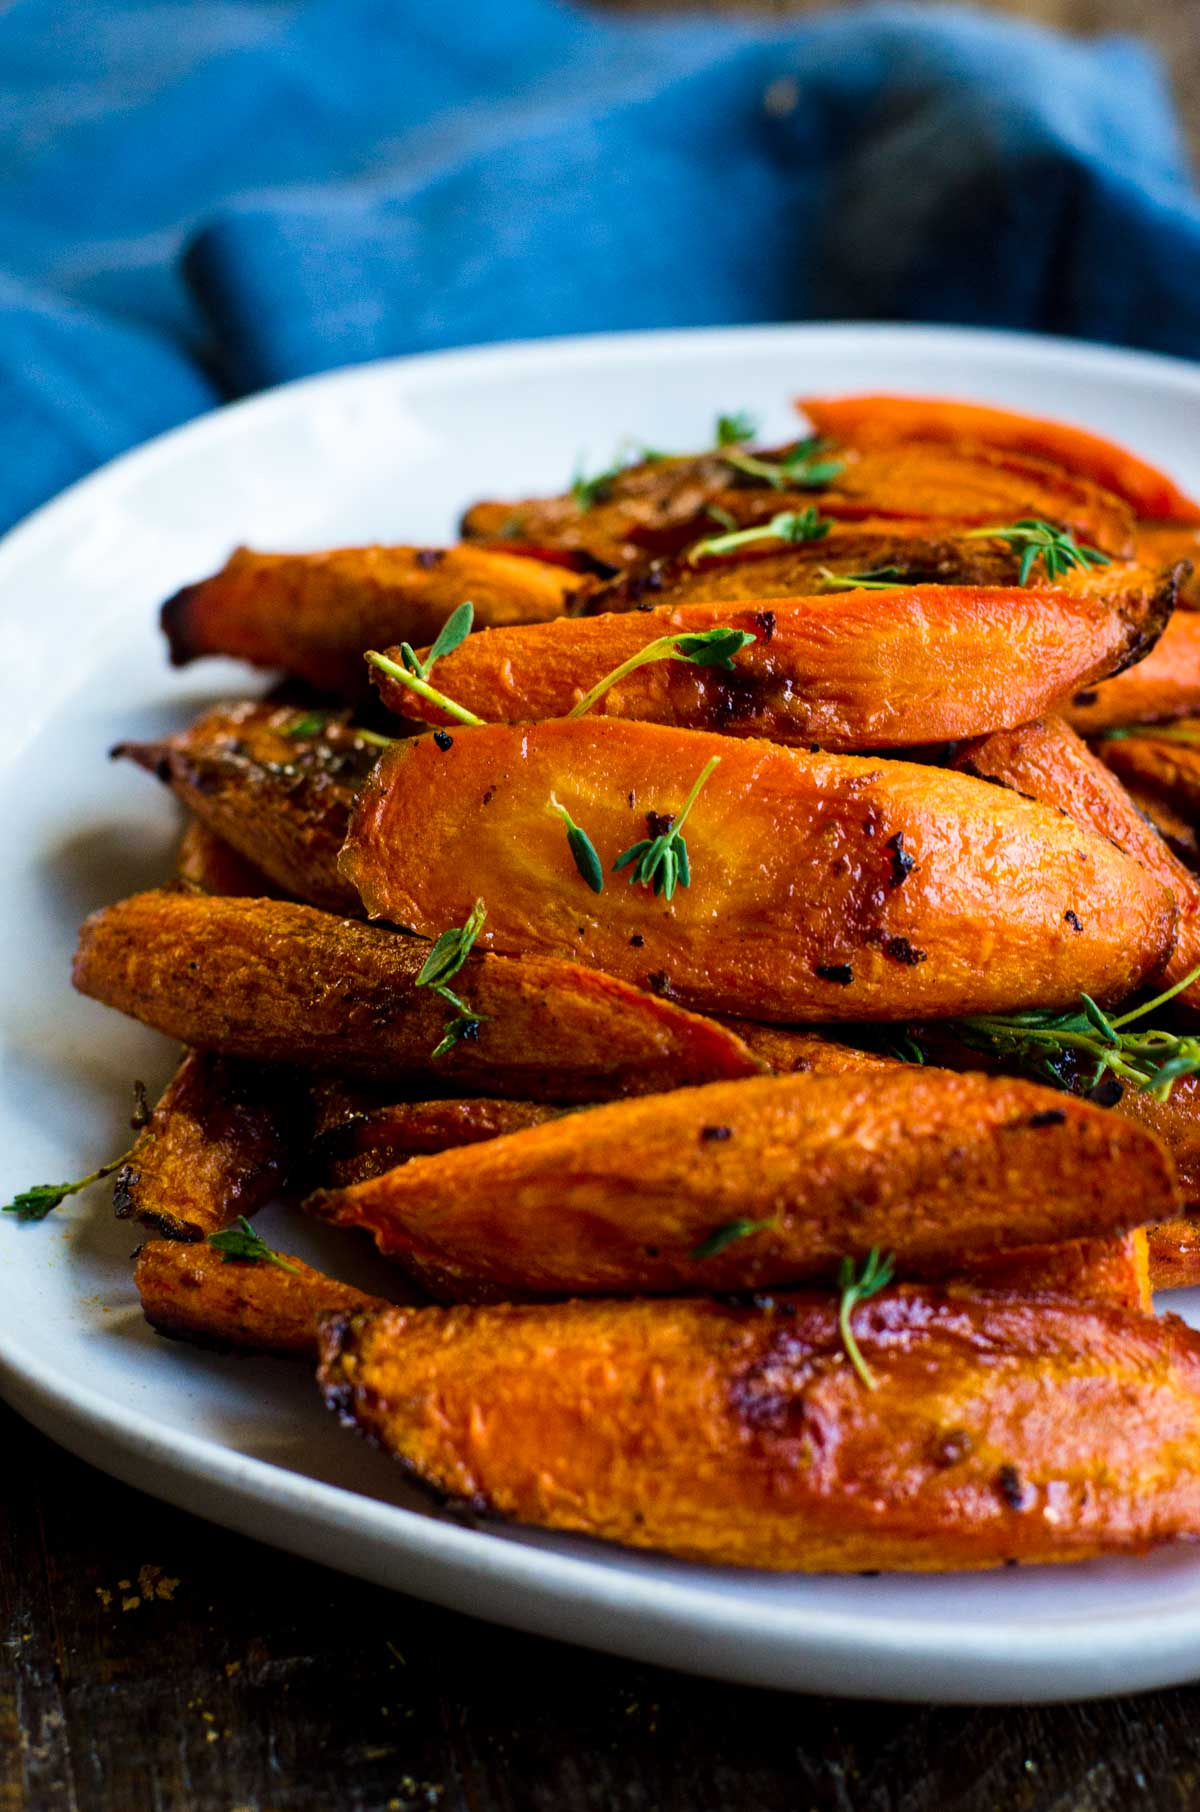 A plate of roasted carrots with fresh thyme.